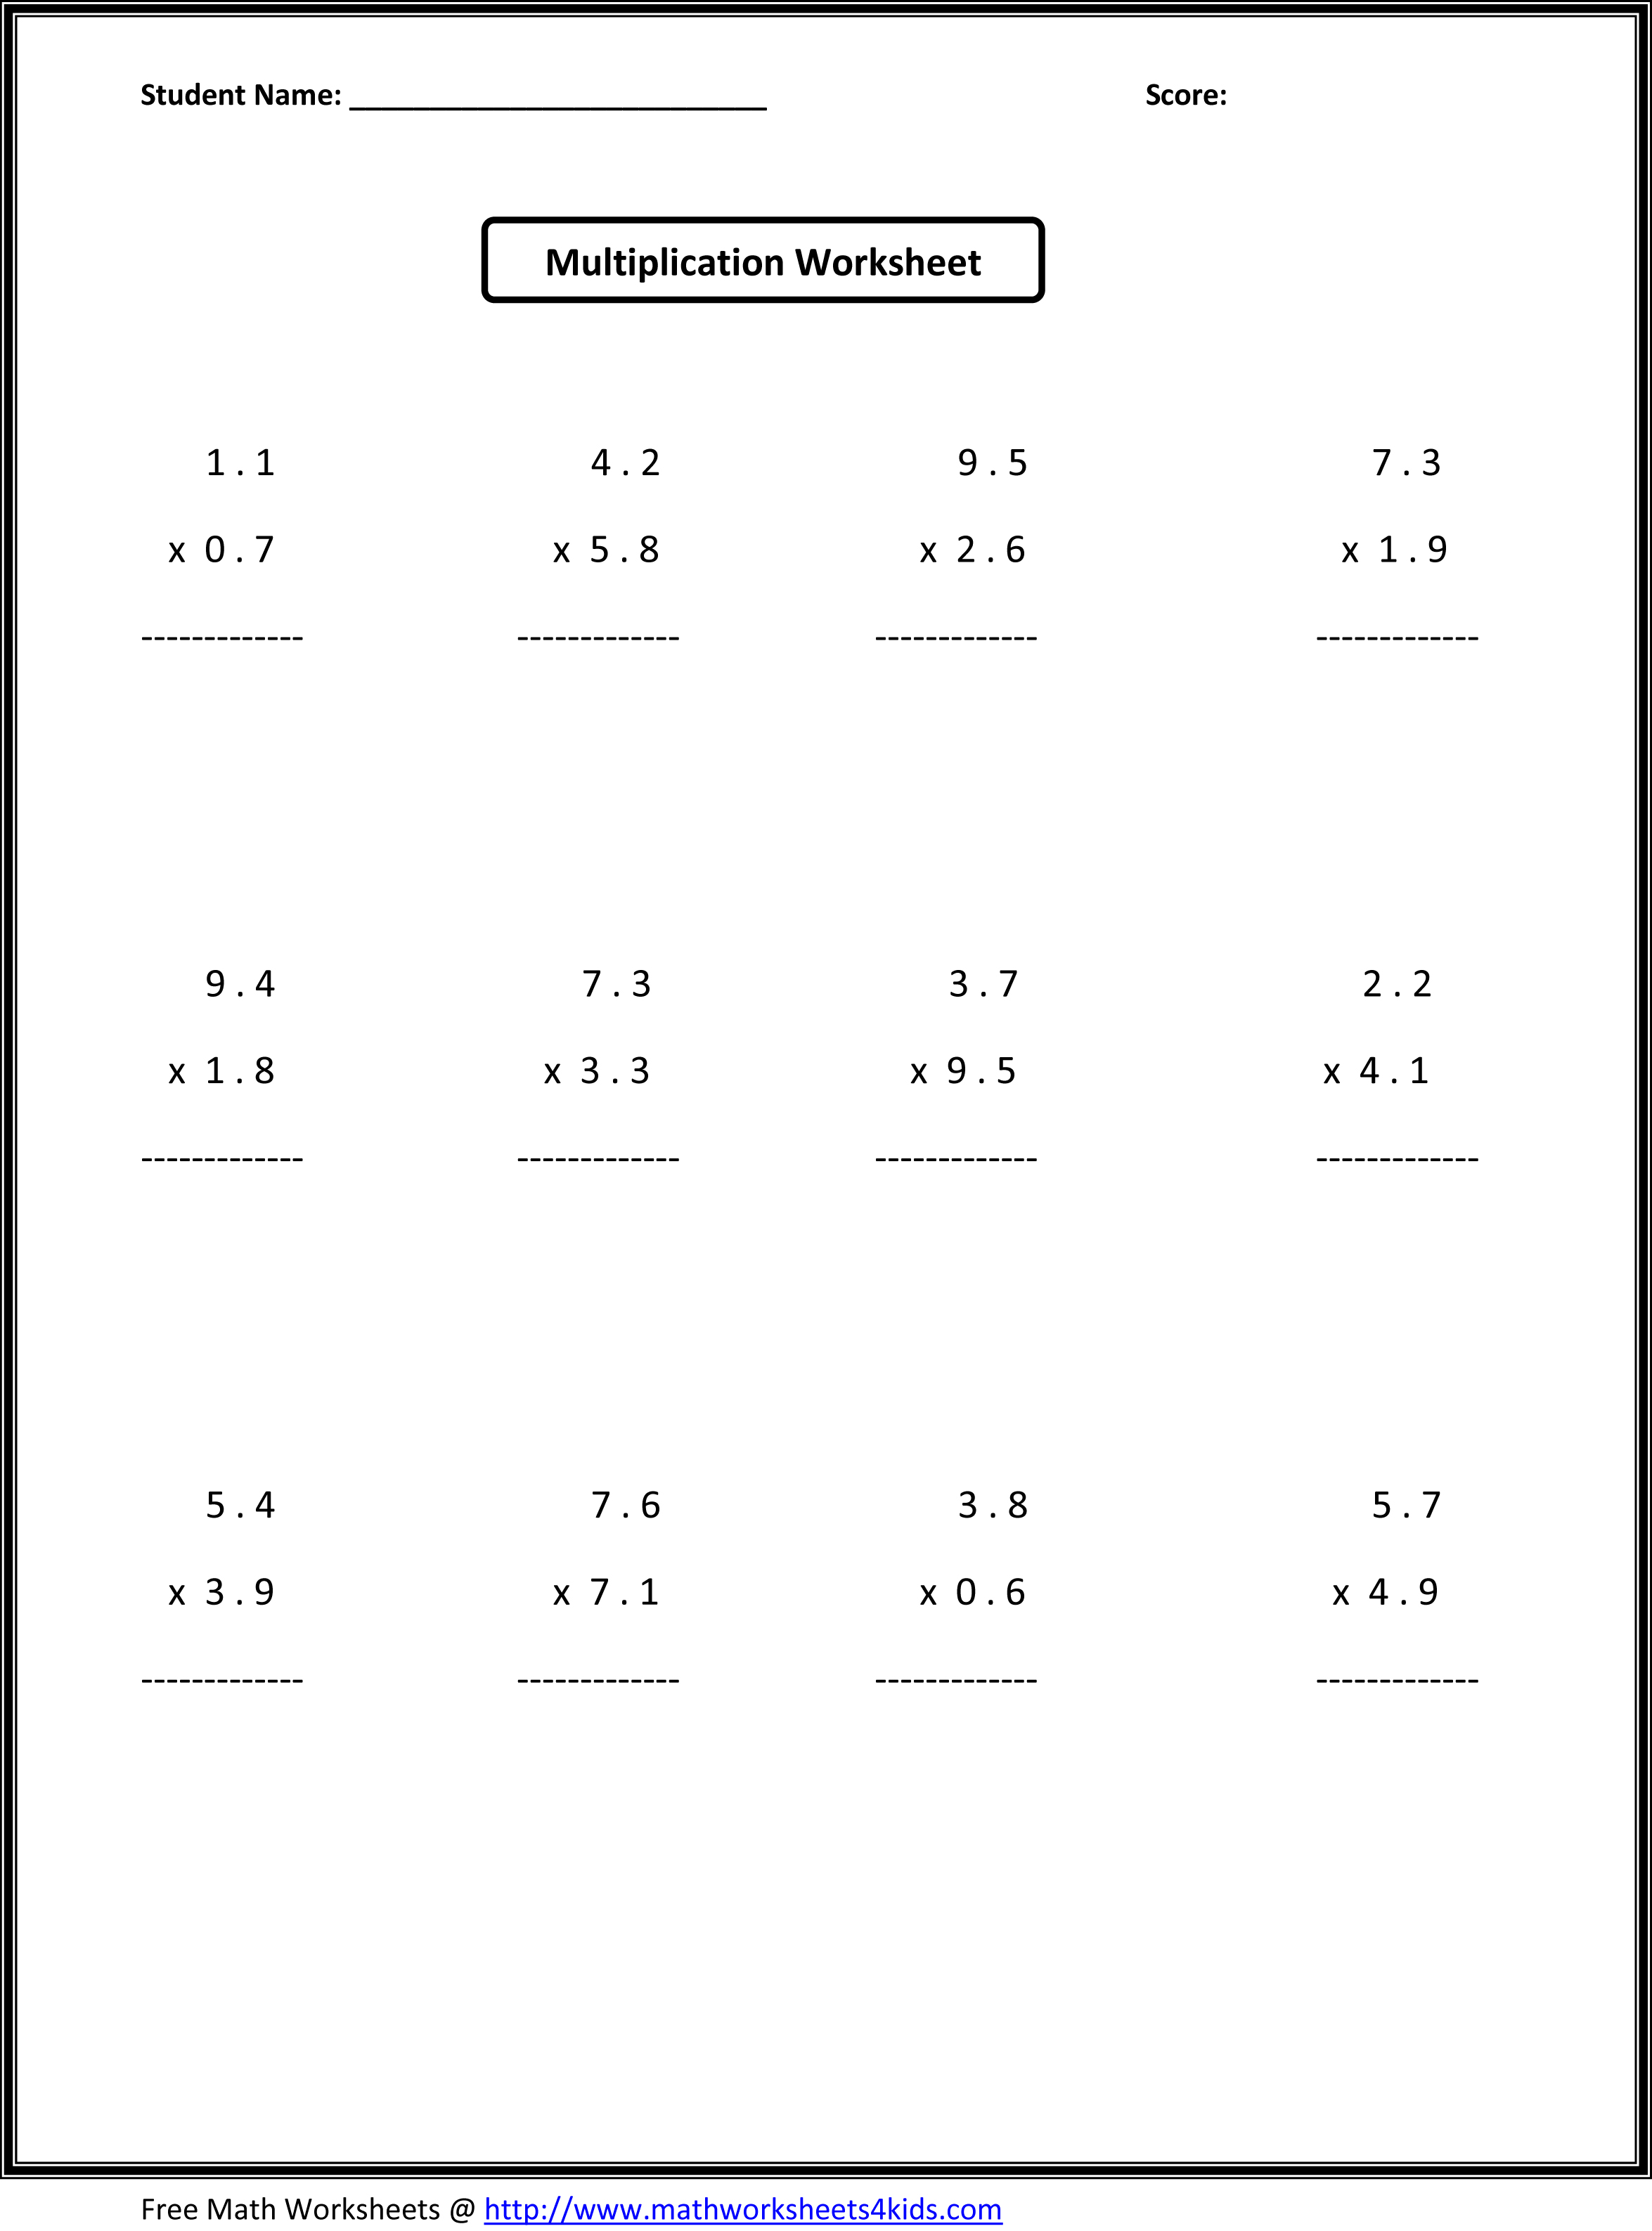 Printables Math Worksheets For Sixth Graders printable worksheet for 6th grade math html standard 7th worksheets curriculum based